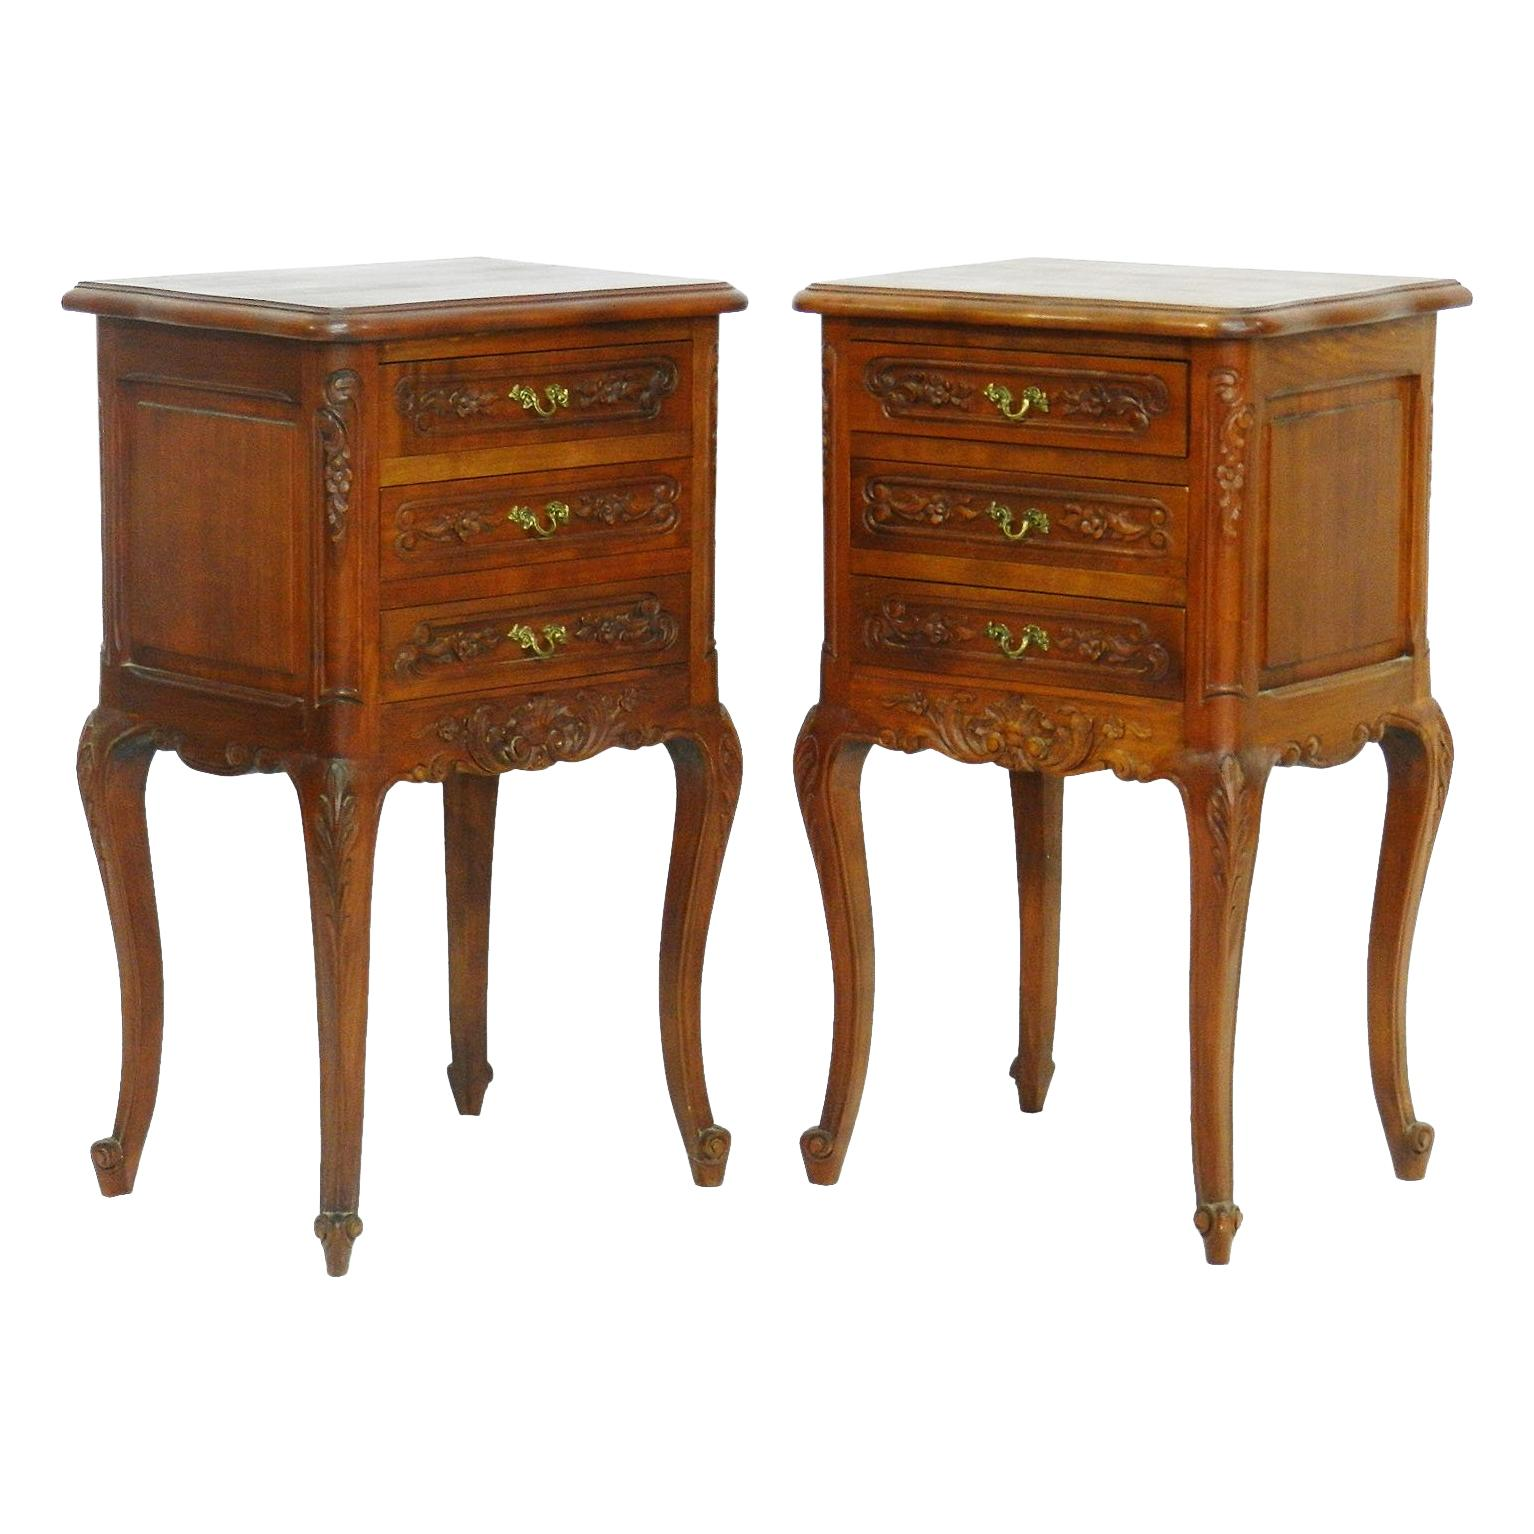 Oak Bedside Tables Pair Of Early 20th Century Continental Oak Bedside Cabinets With Marble Tops